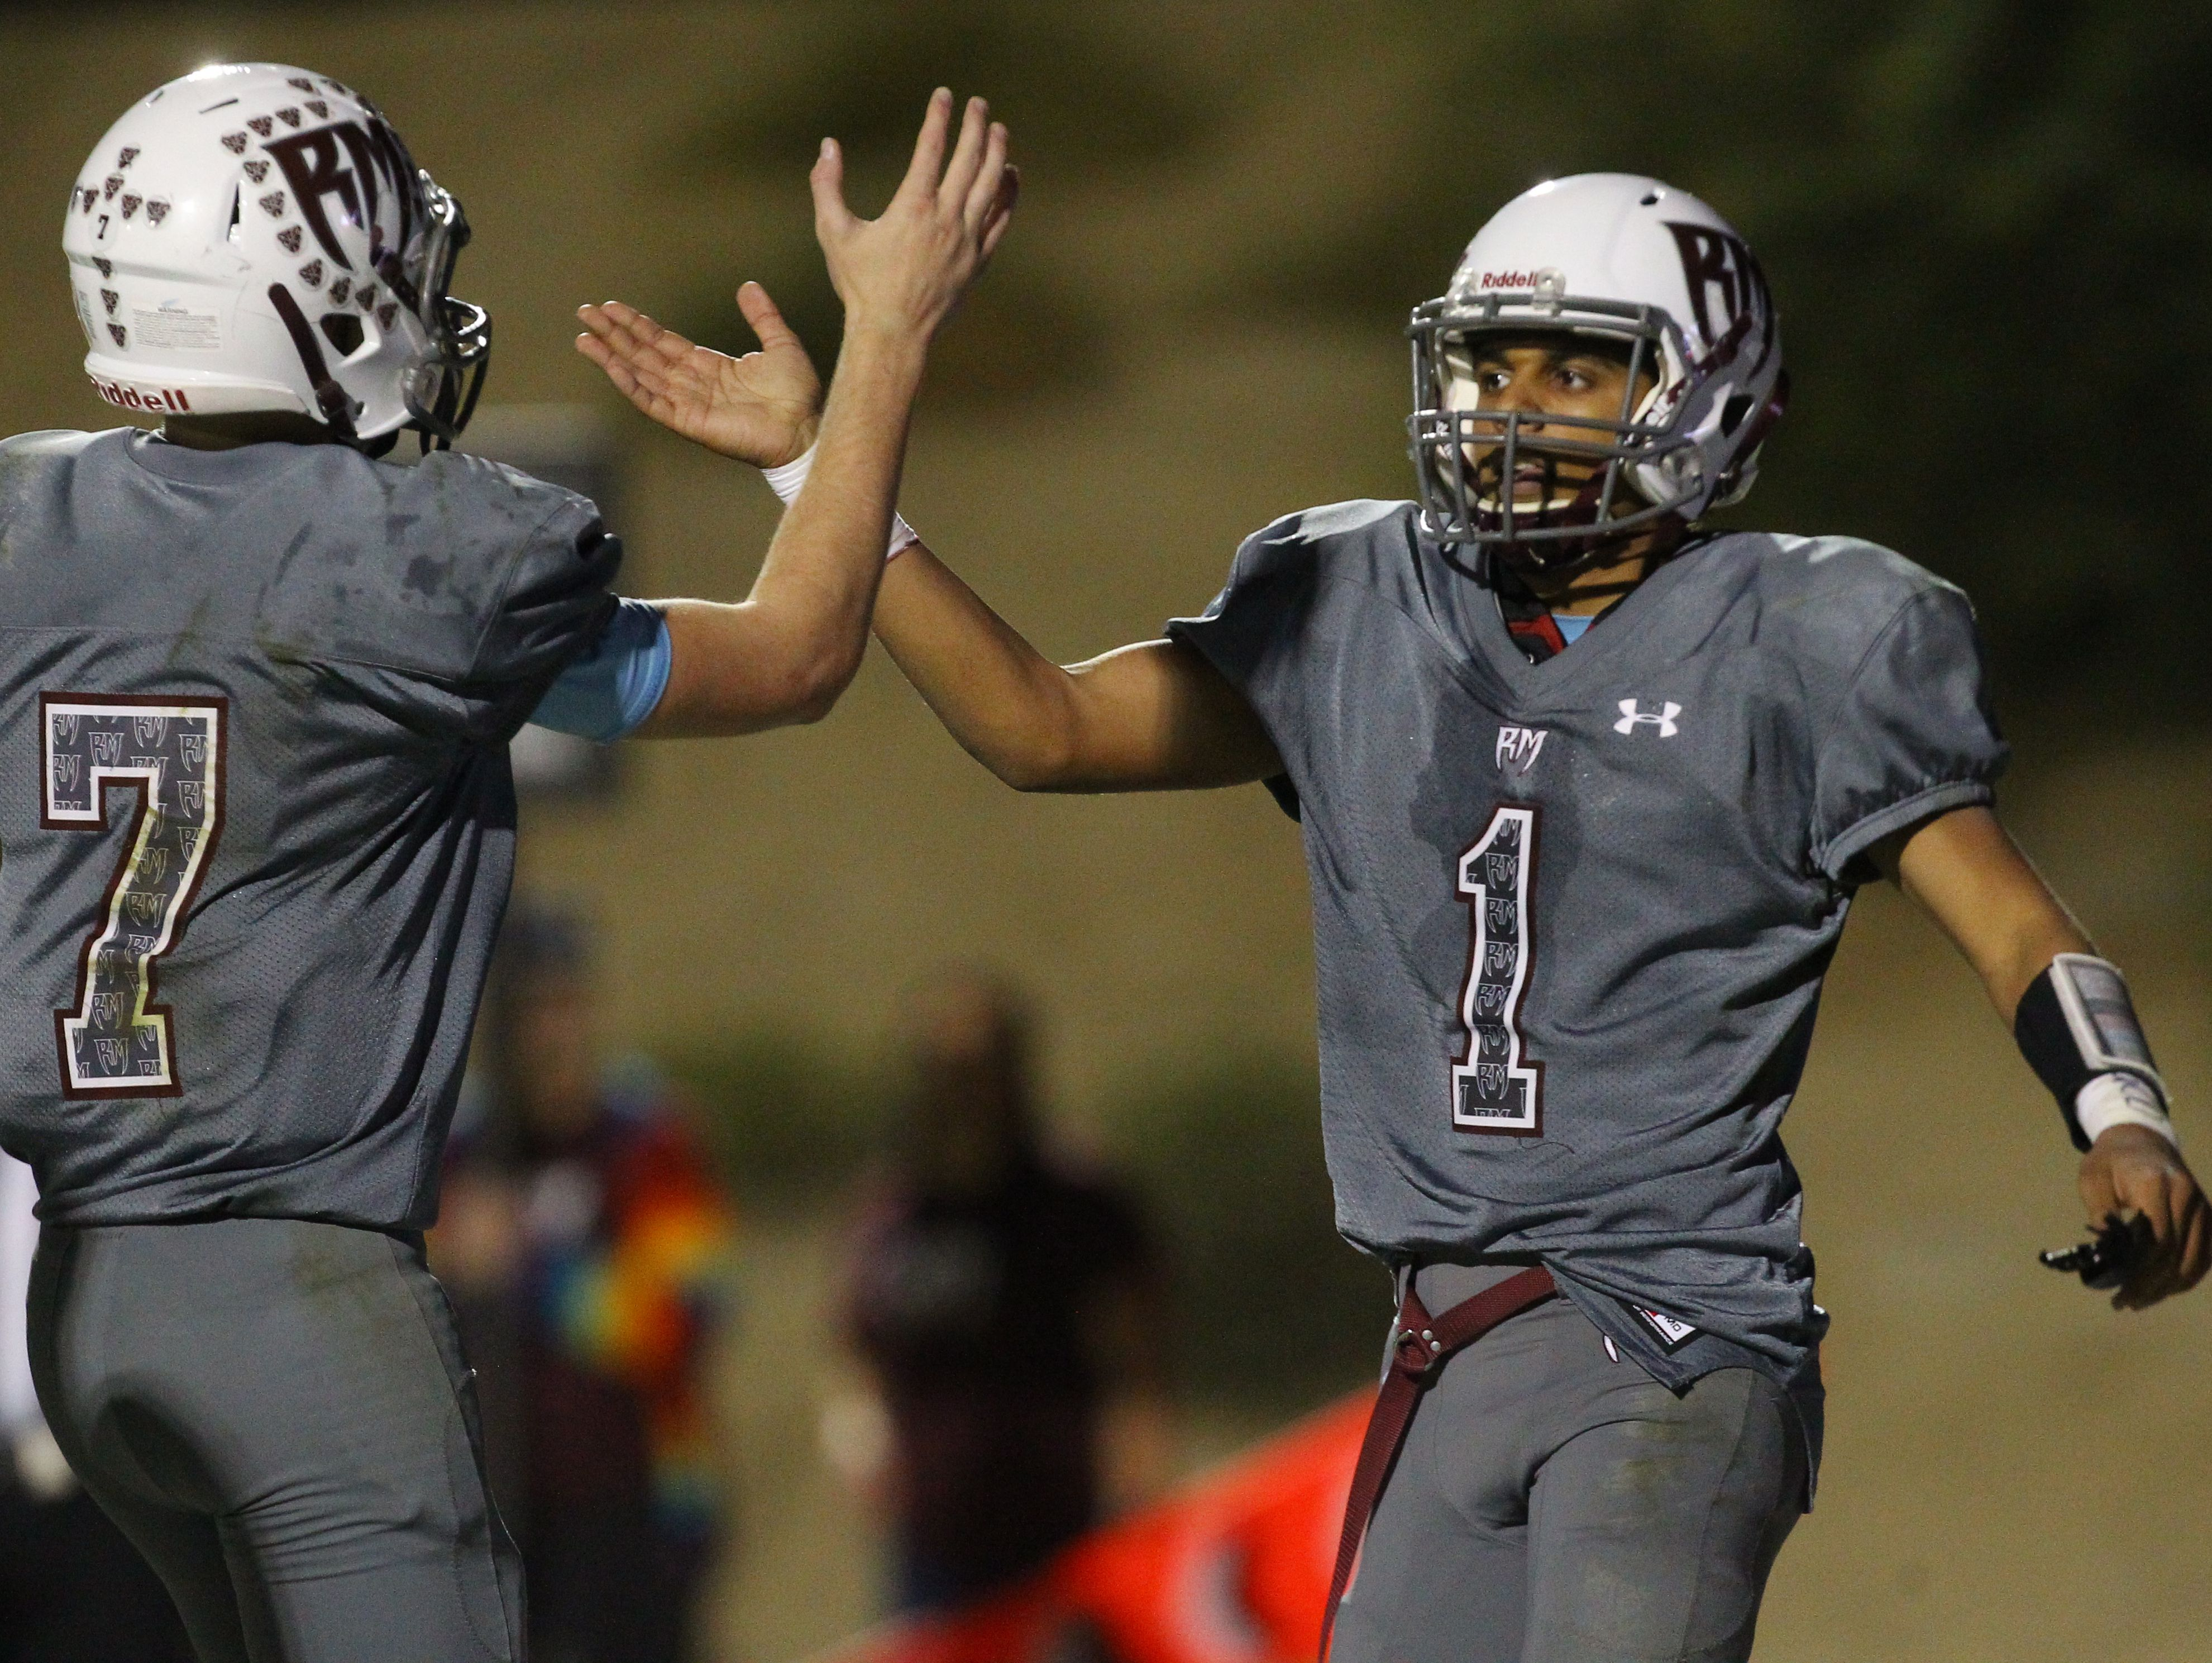 David Talley and Marques Prior of Rancho Mirage High School celebrate Prior's touchdown in the third quarter of their CIF post-season game against Los Amigos High School at home.